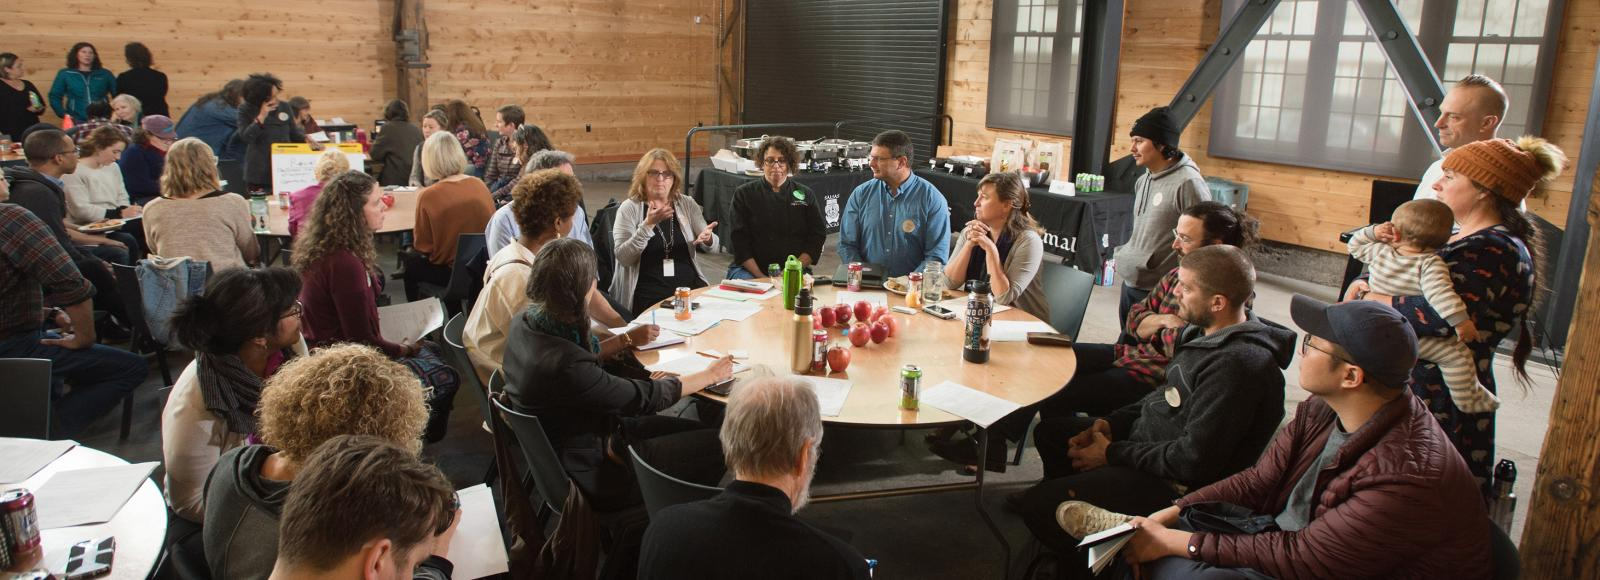 A few dozen people seated around round tables or standing, interacting with each other.